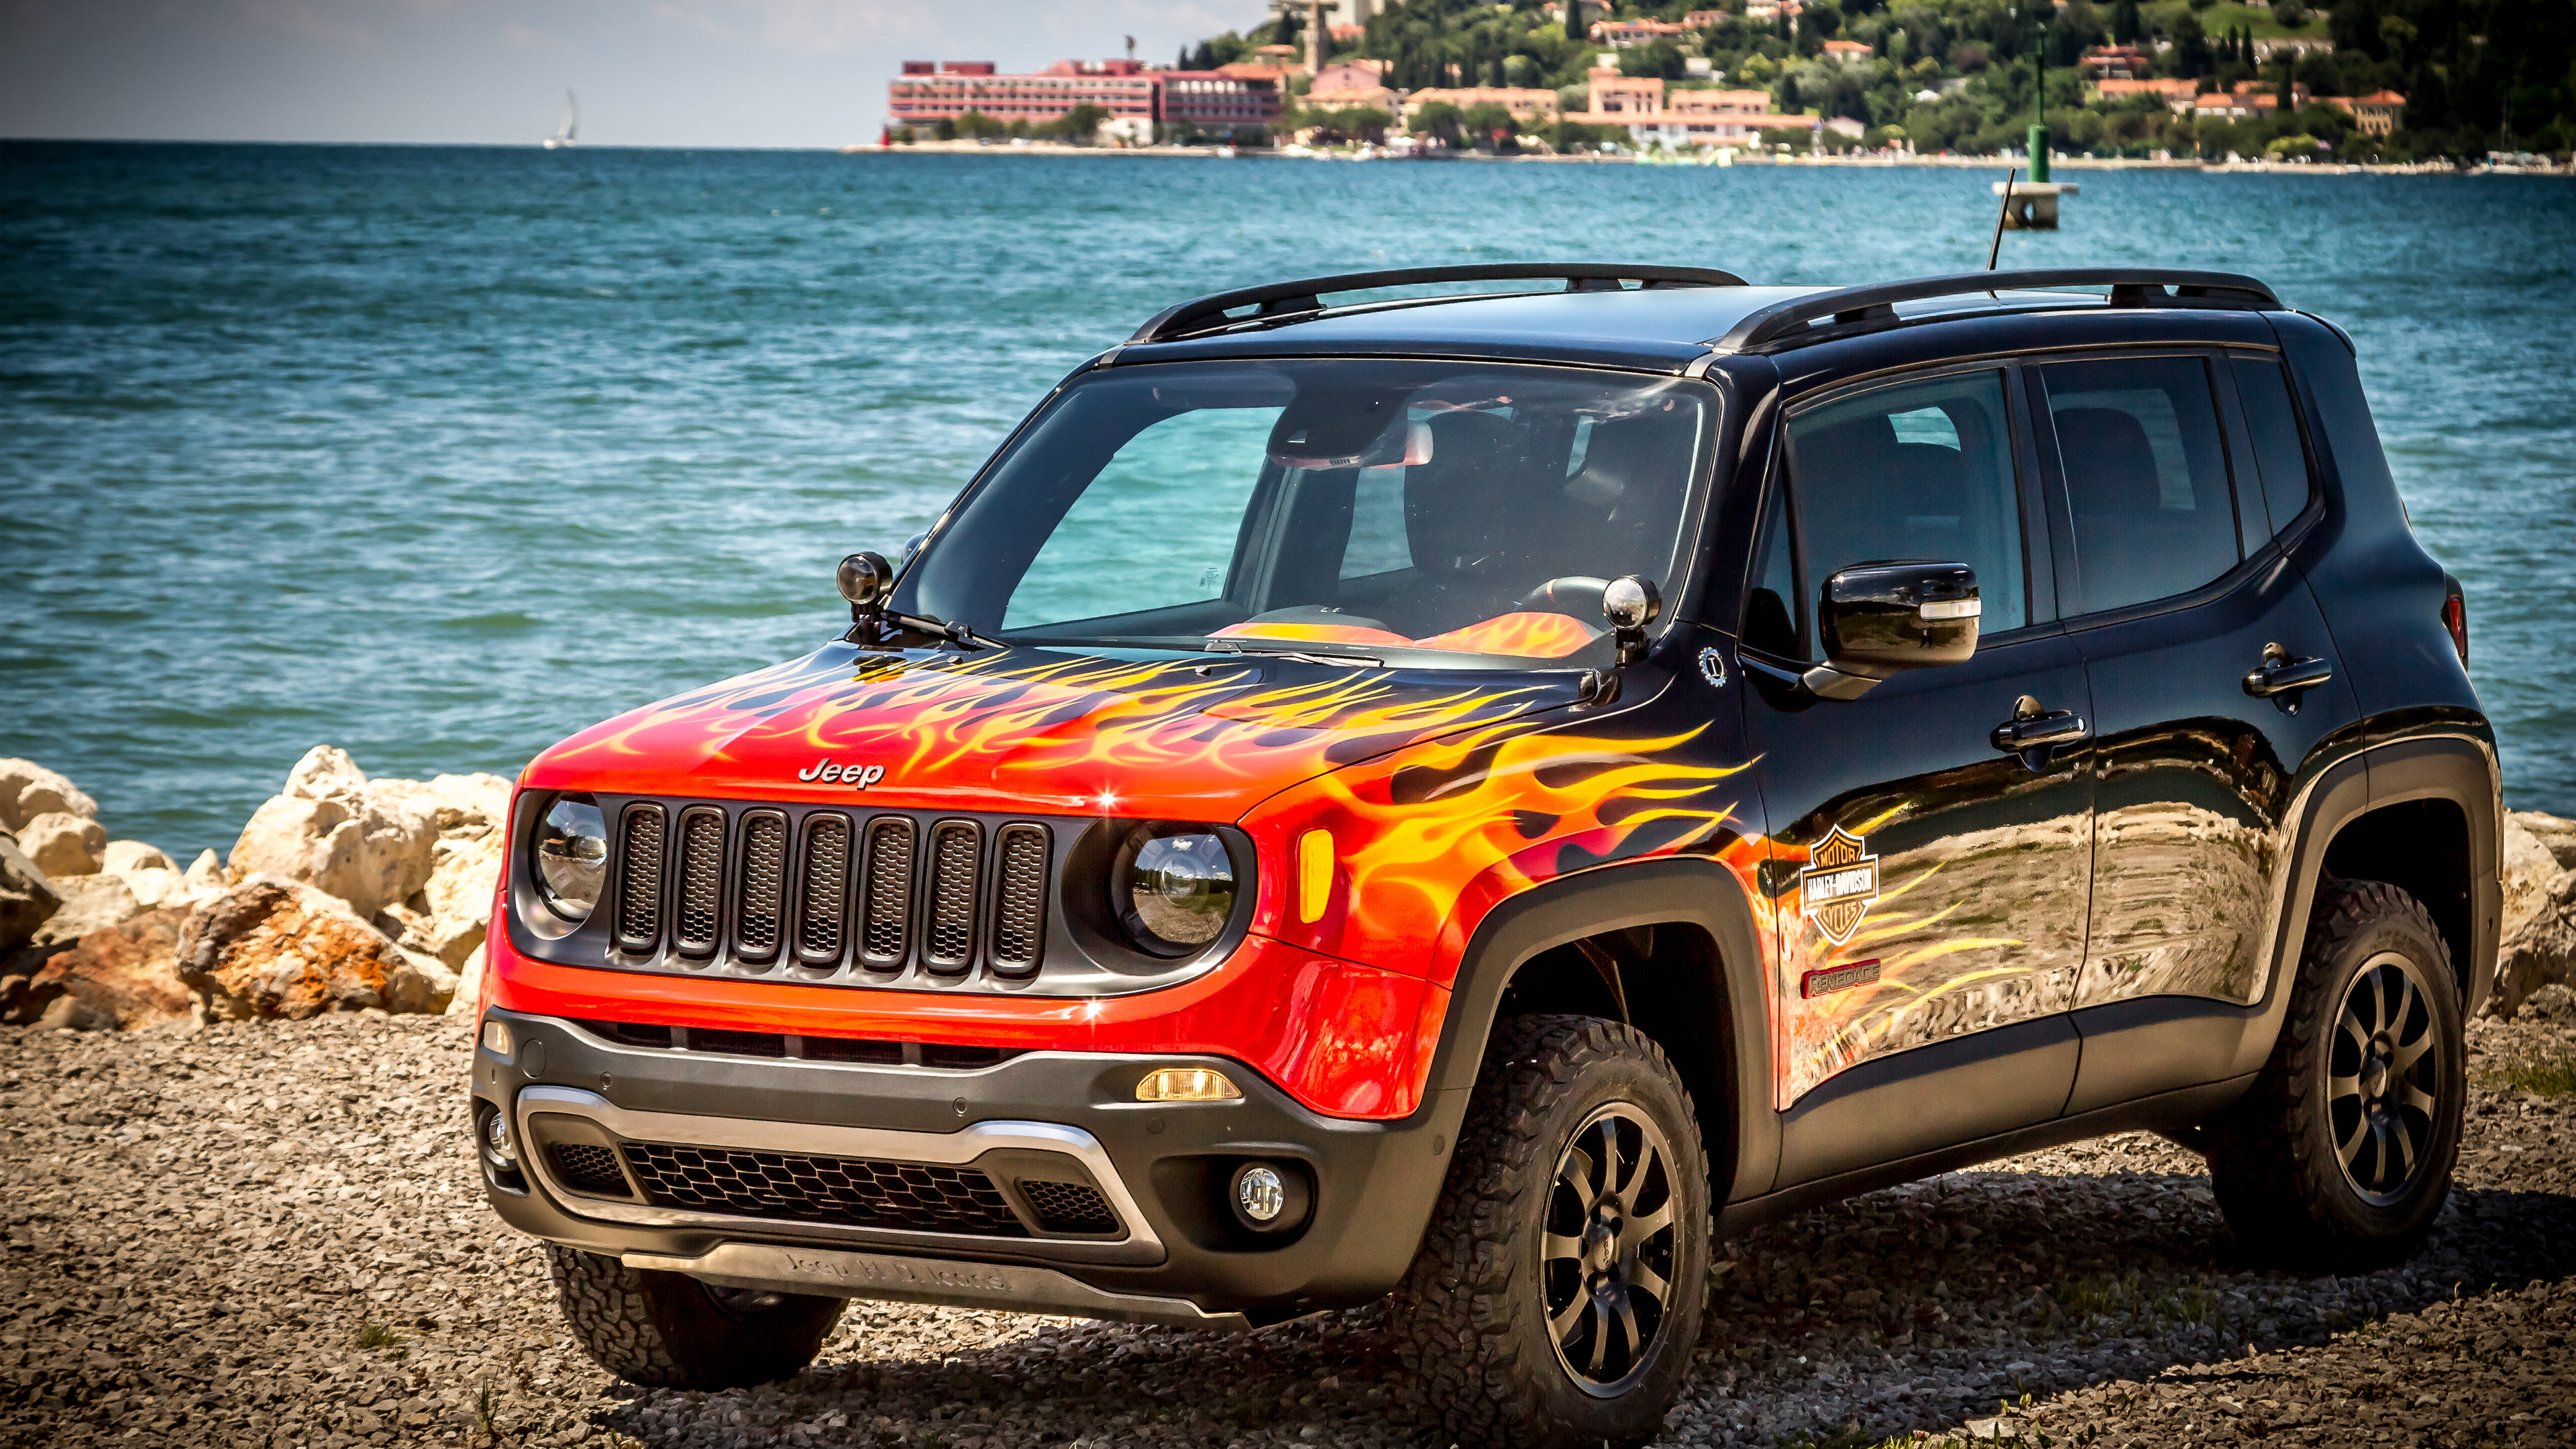 jeep renegade hells revenge 2 wallpaper hd car wallpapers id 6668. Black Bedroom Furniture Sets. Home Design Ideas